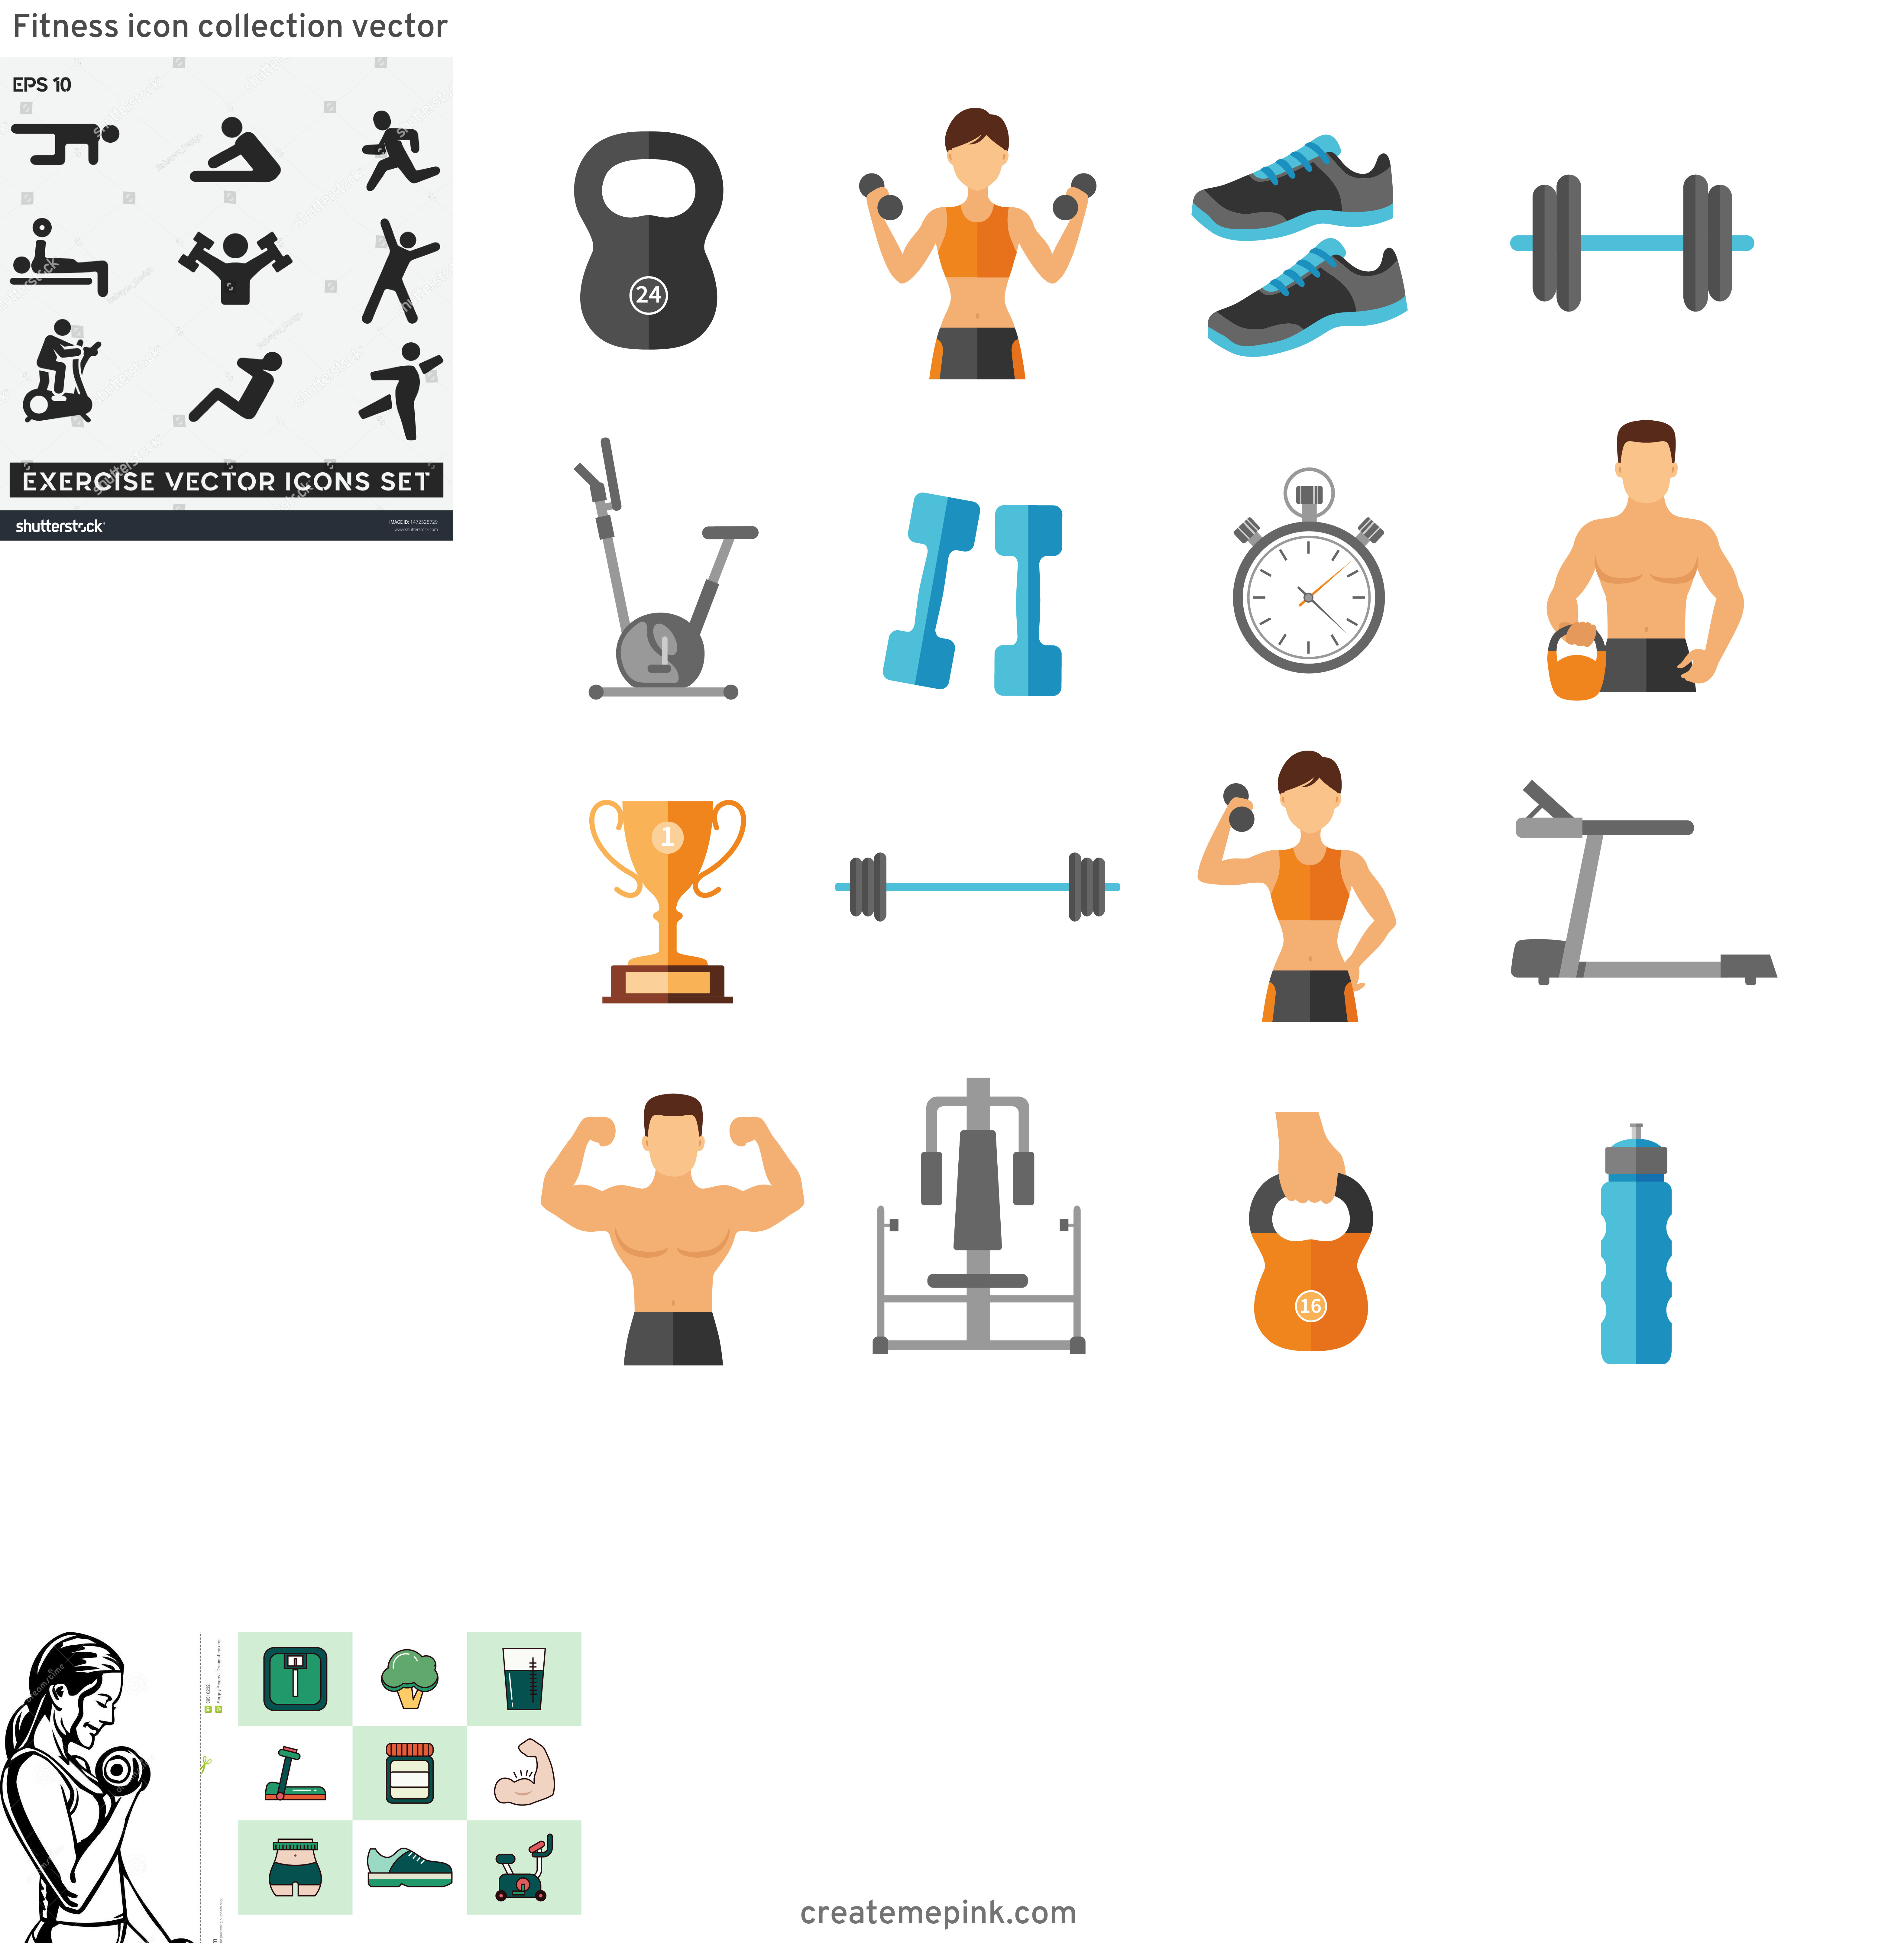 Fitness Vector Art: Fitness Icon Collection Vector